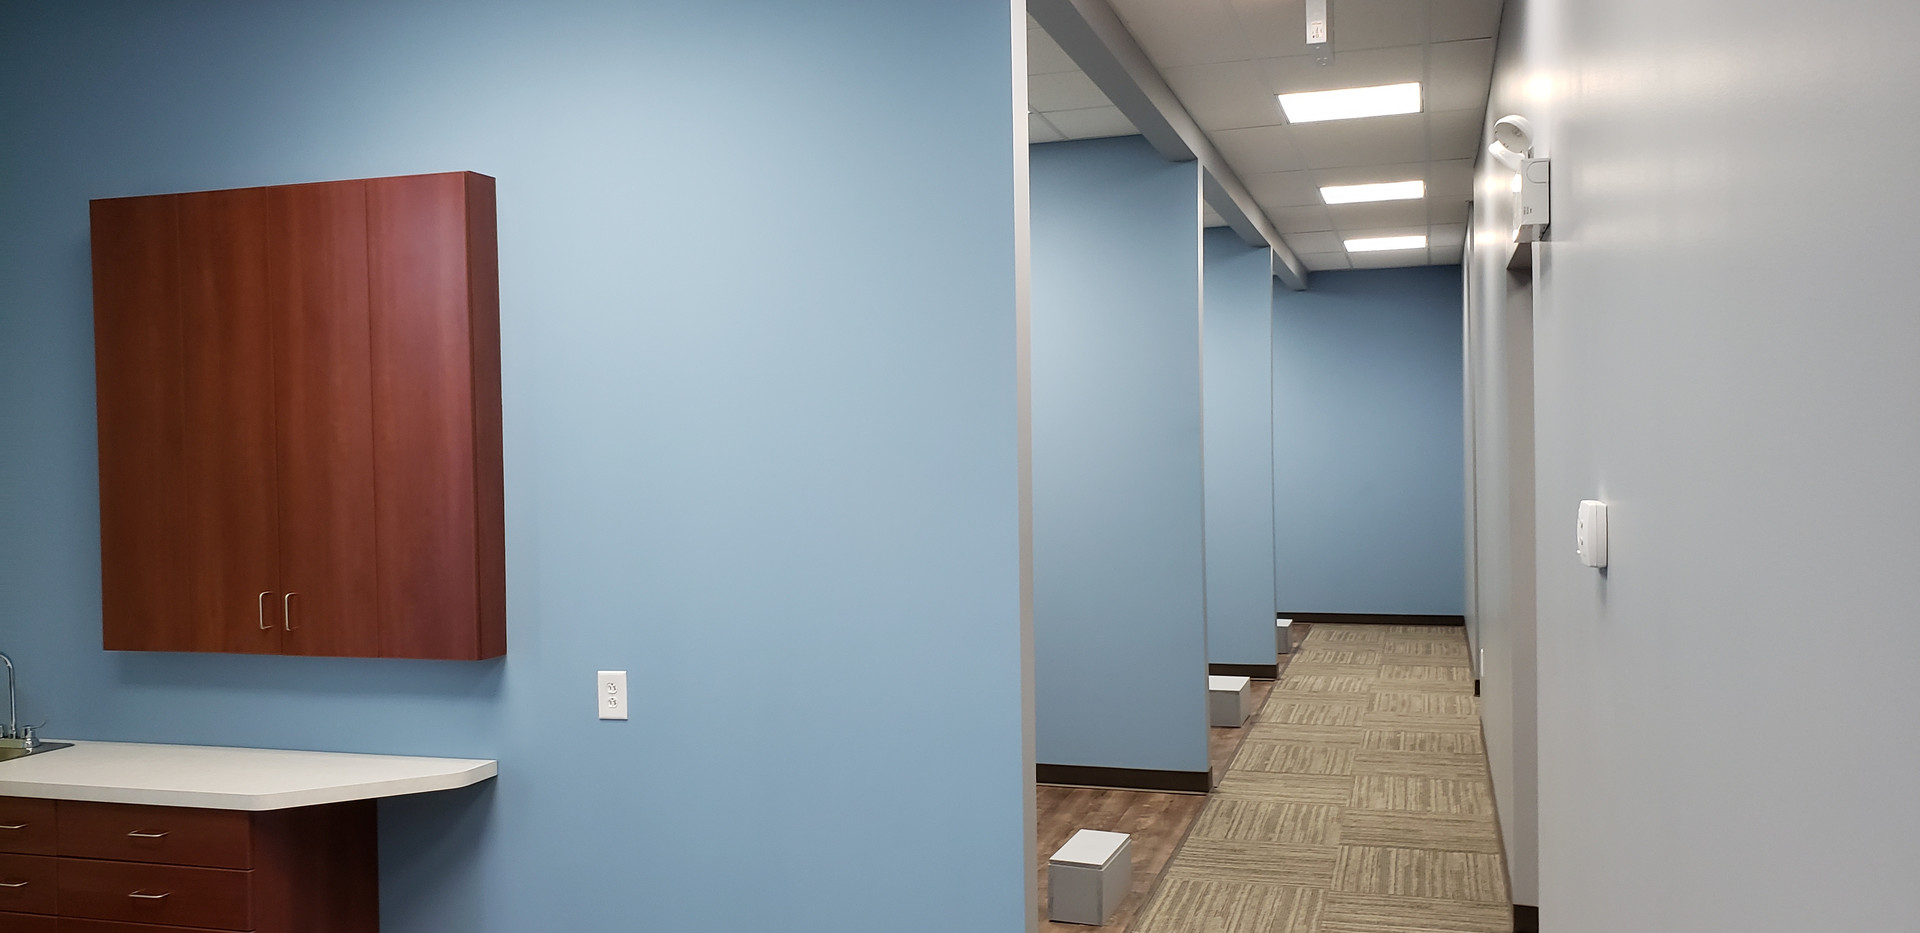 Hallway View of Dental Rooms - Buildout Pros